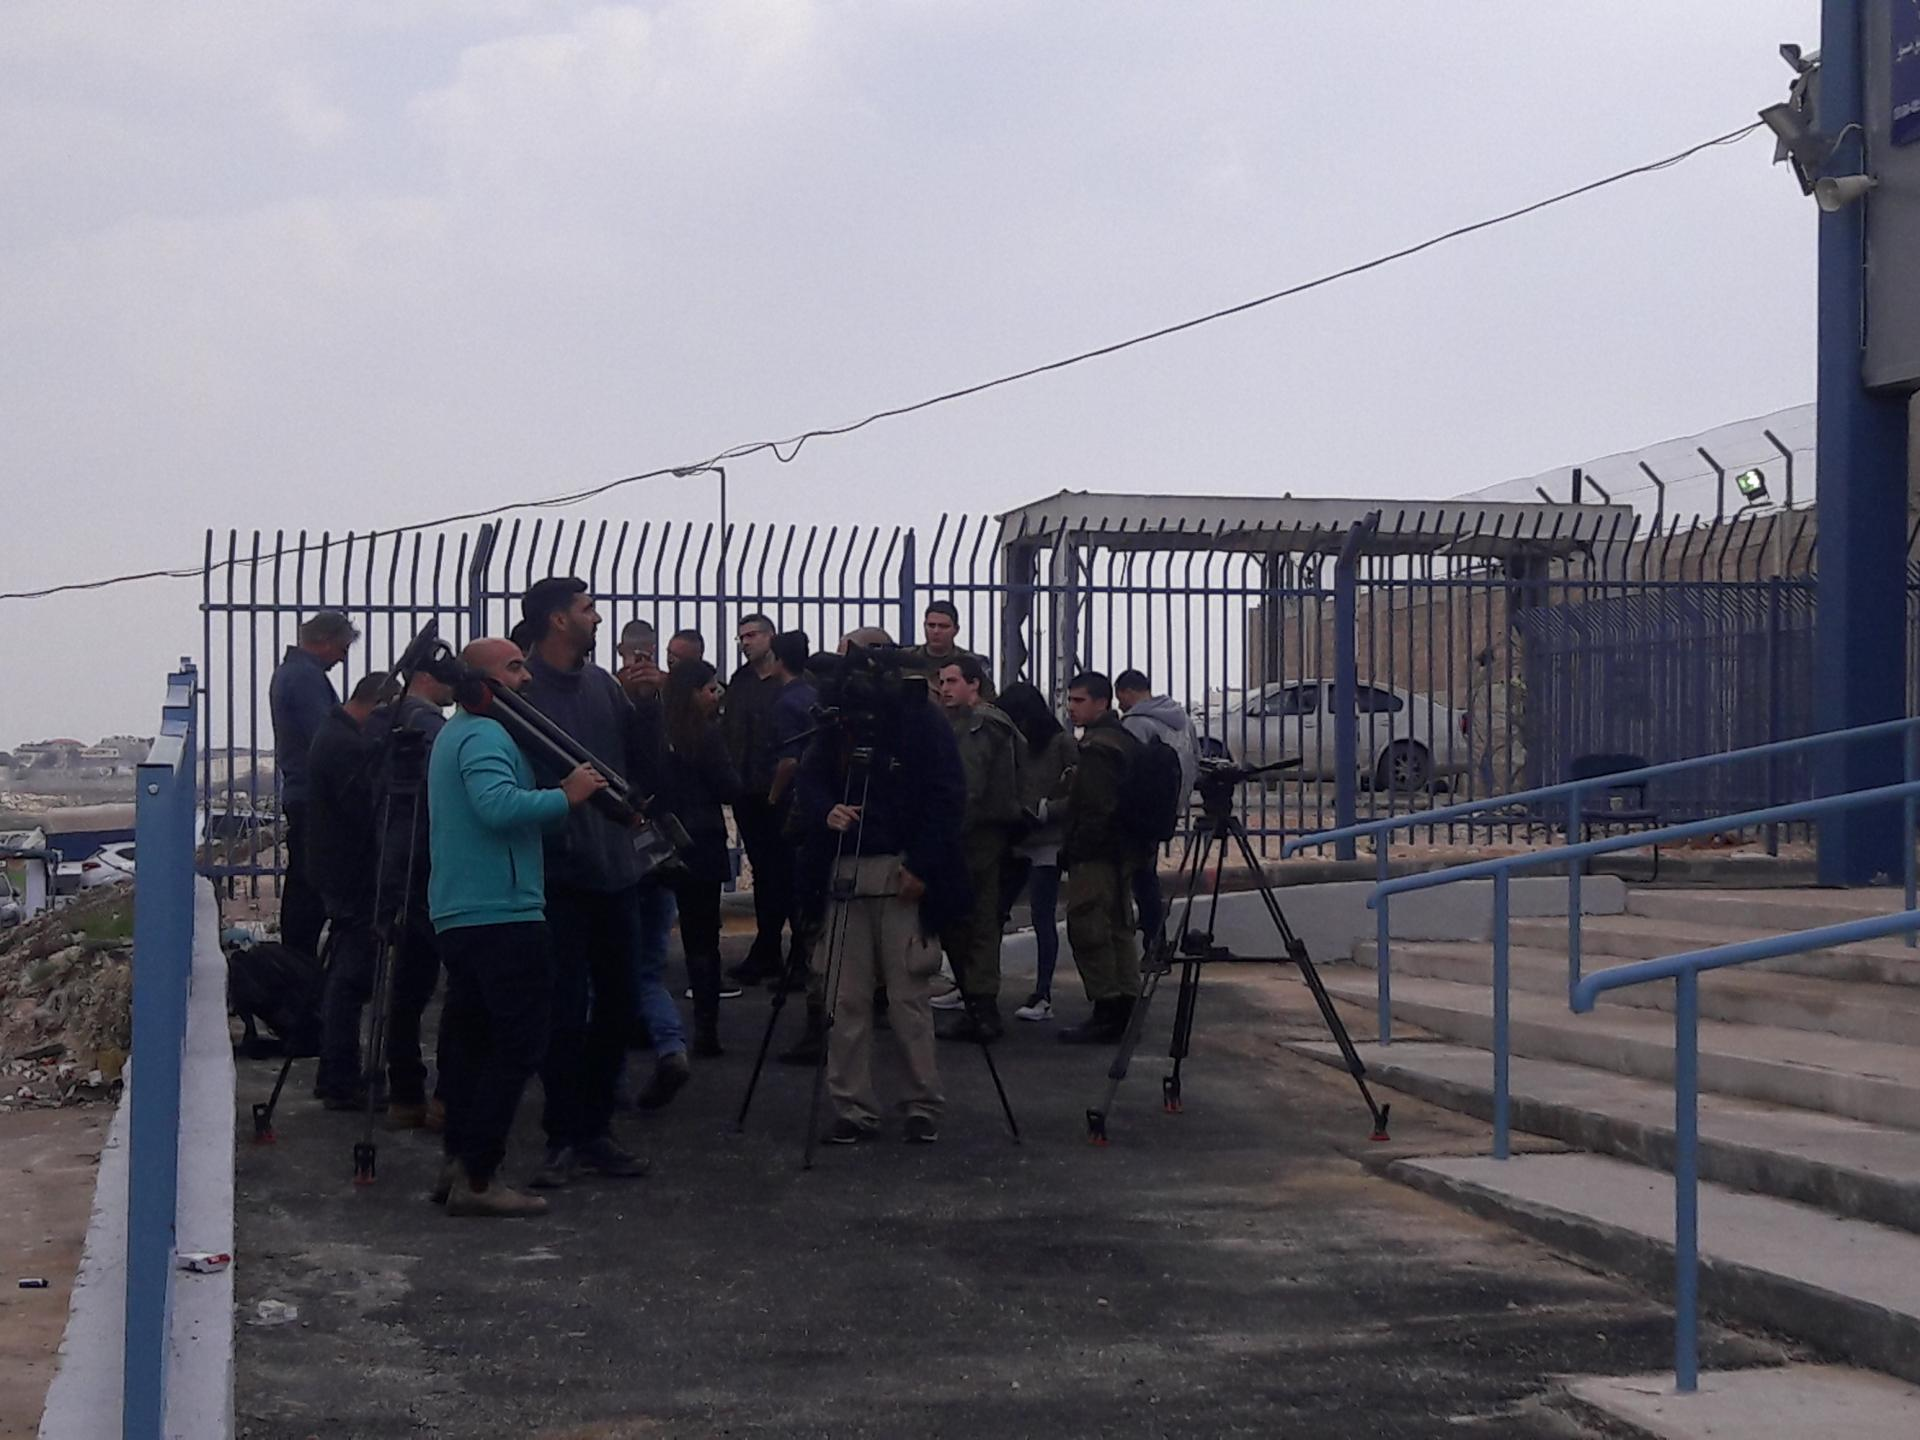 Journalists on the Palestinian side of the new checkpoint